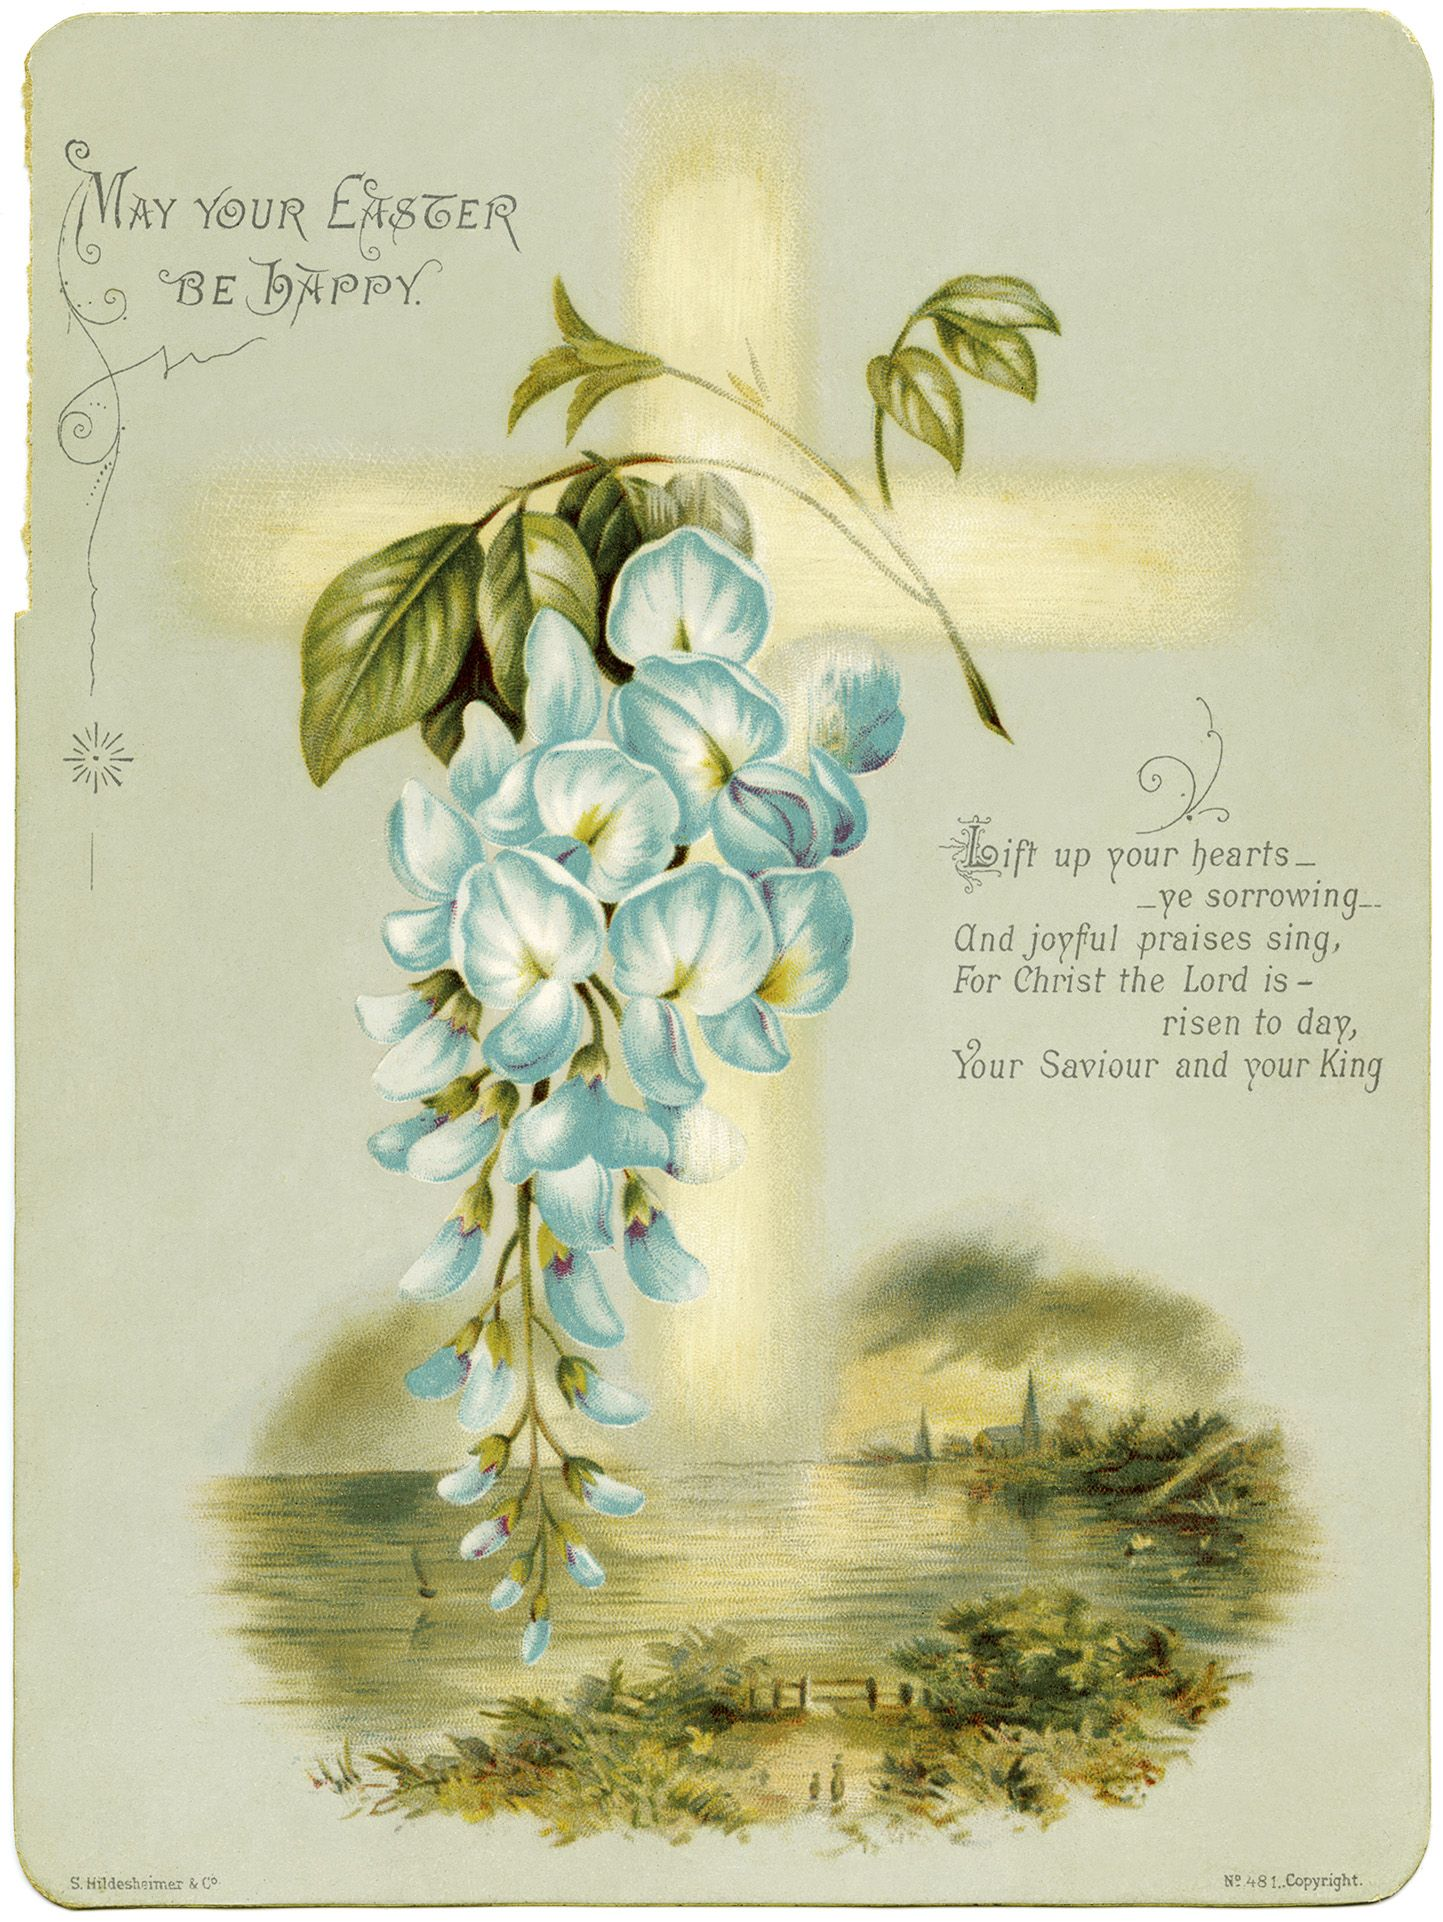 Old Design Shop Free Digital Image Antique Hildesheimer Easter